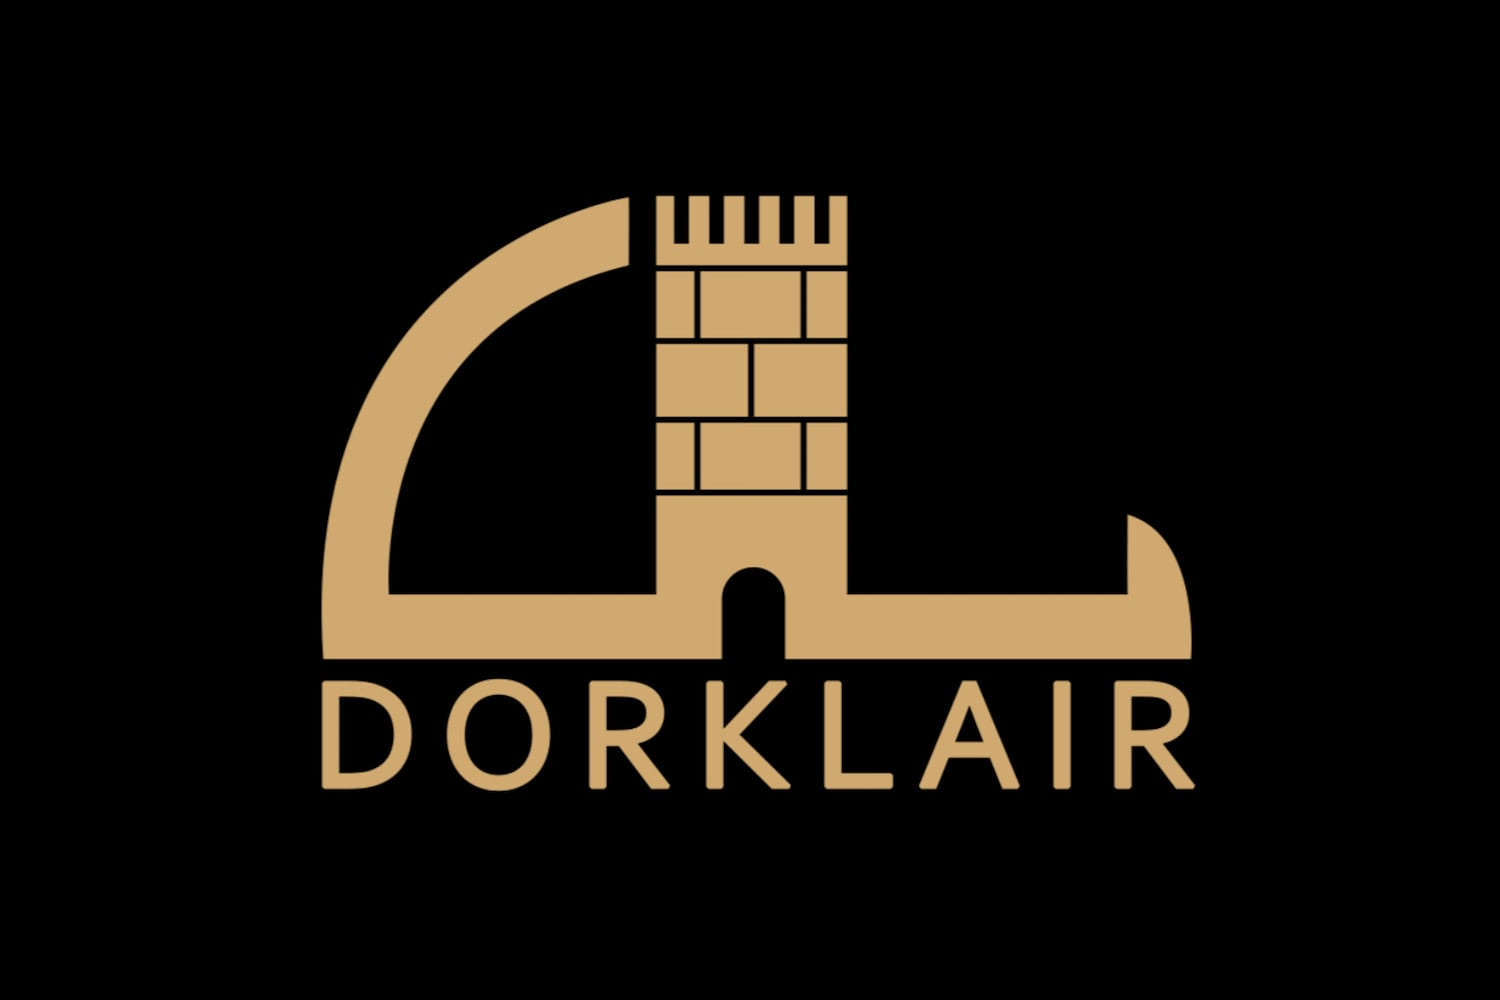 Dorklair logo